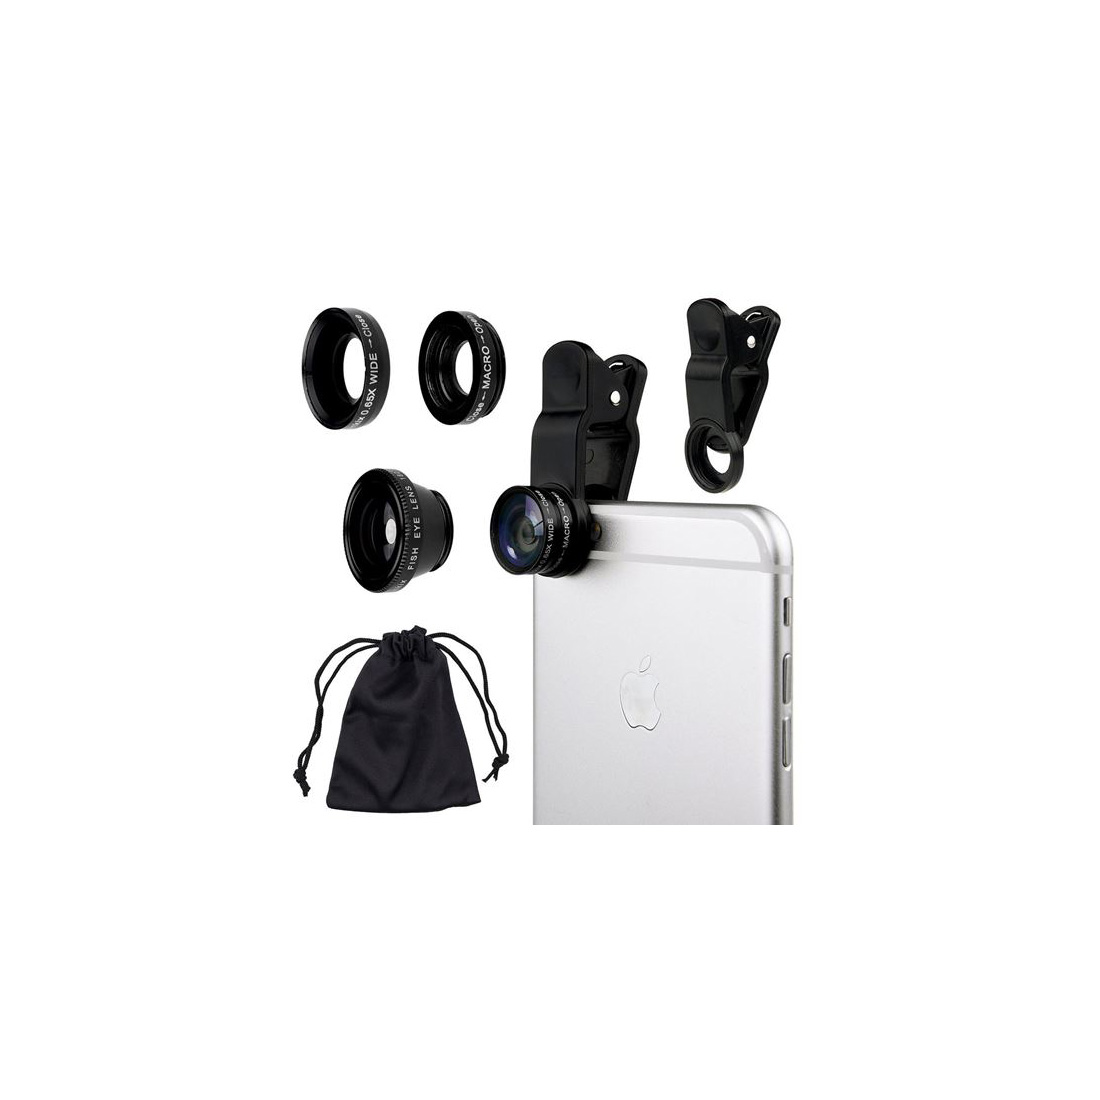 Aura Lens Phone Camera Lens - Black